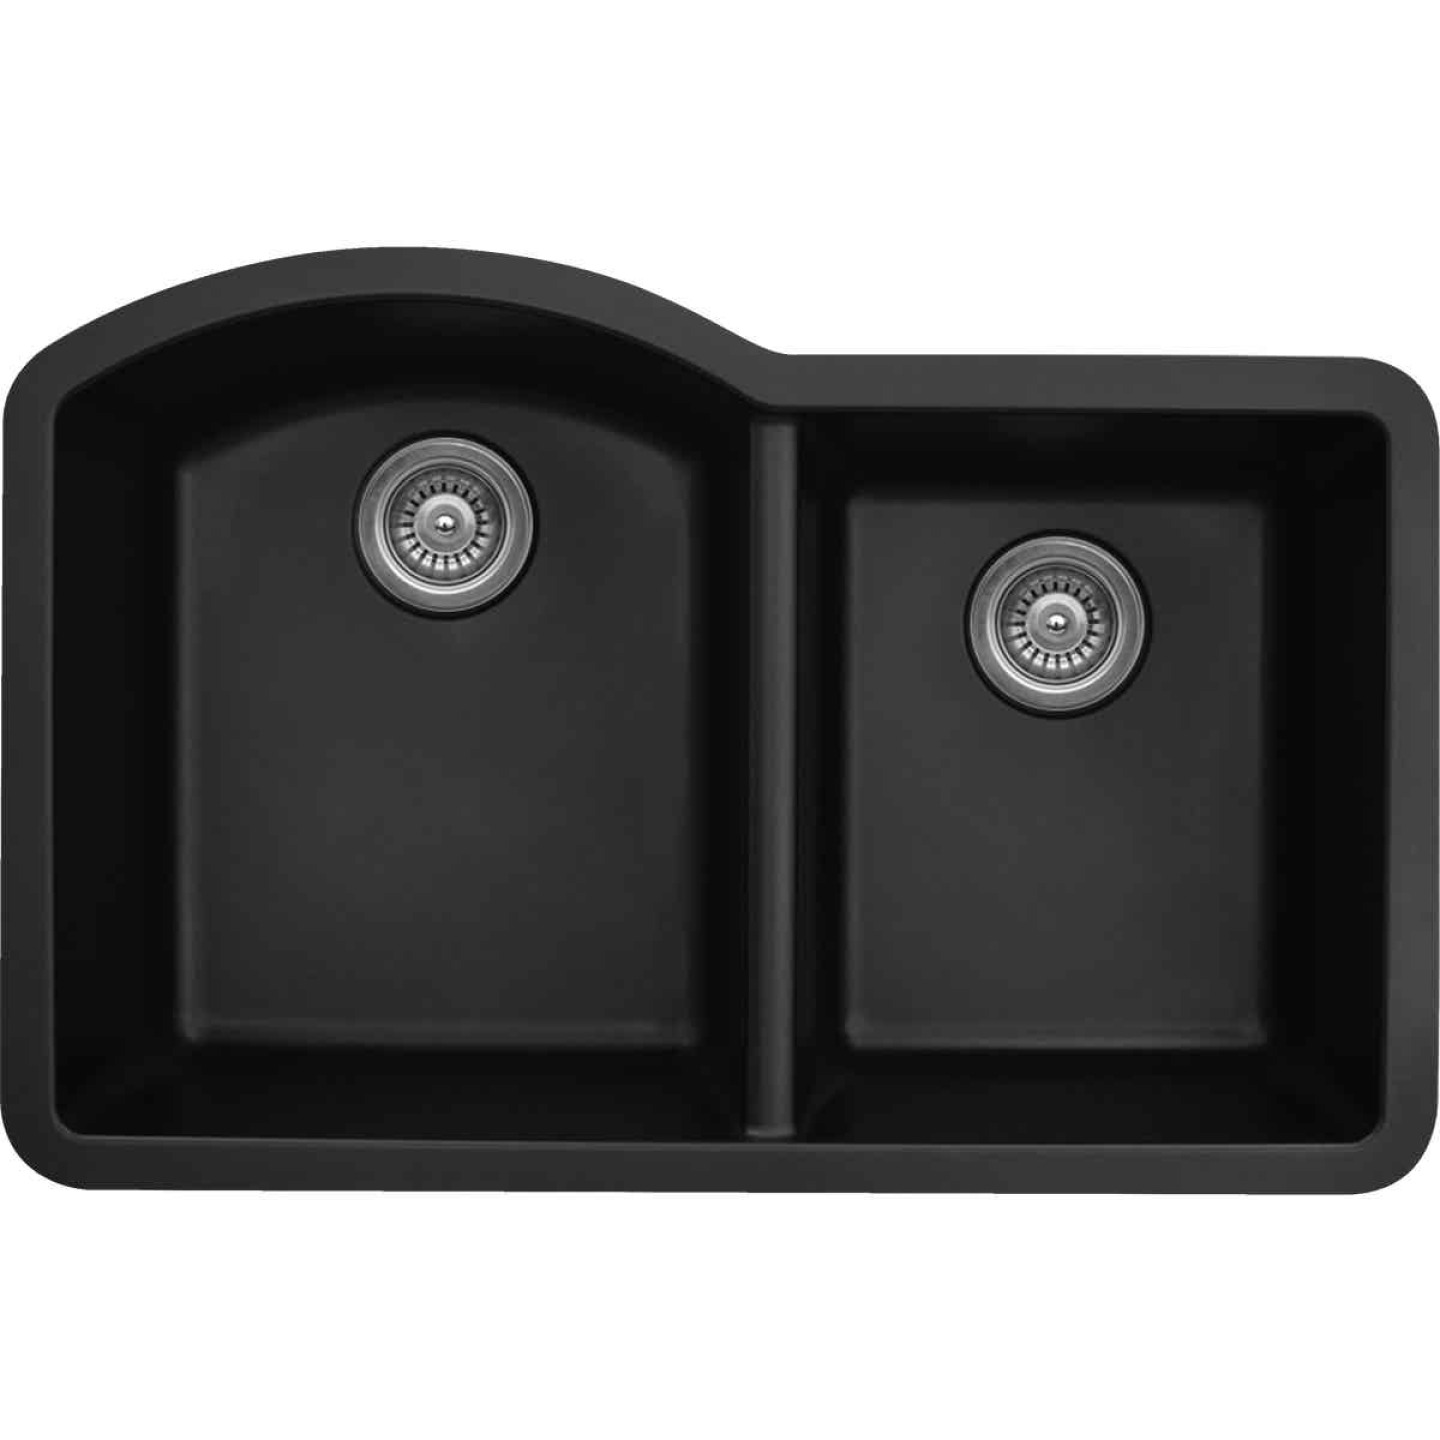 Karran Double Bowl 32 In. x 21 In. x 9 In. Deep Satin Black Quartz Kitchen Sink, Undermount Image 1